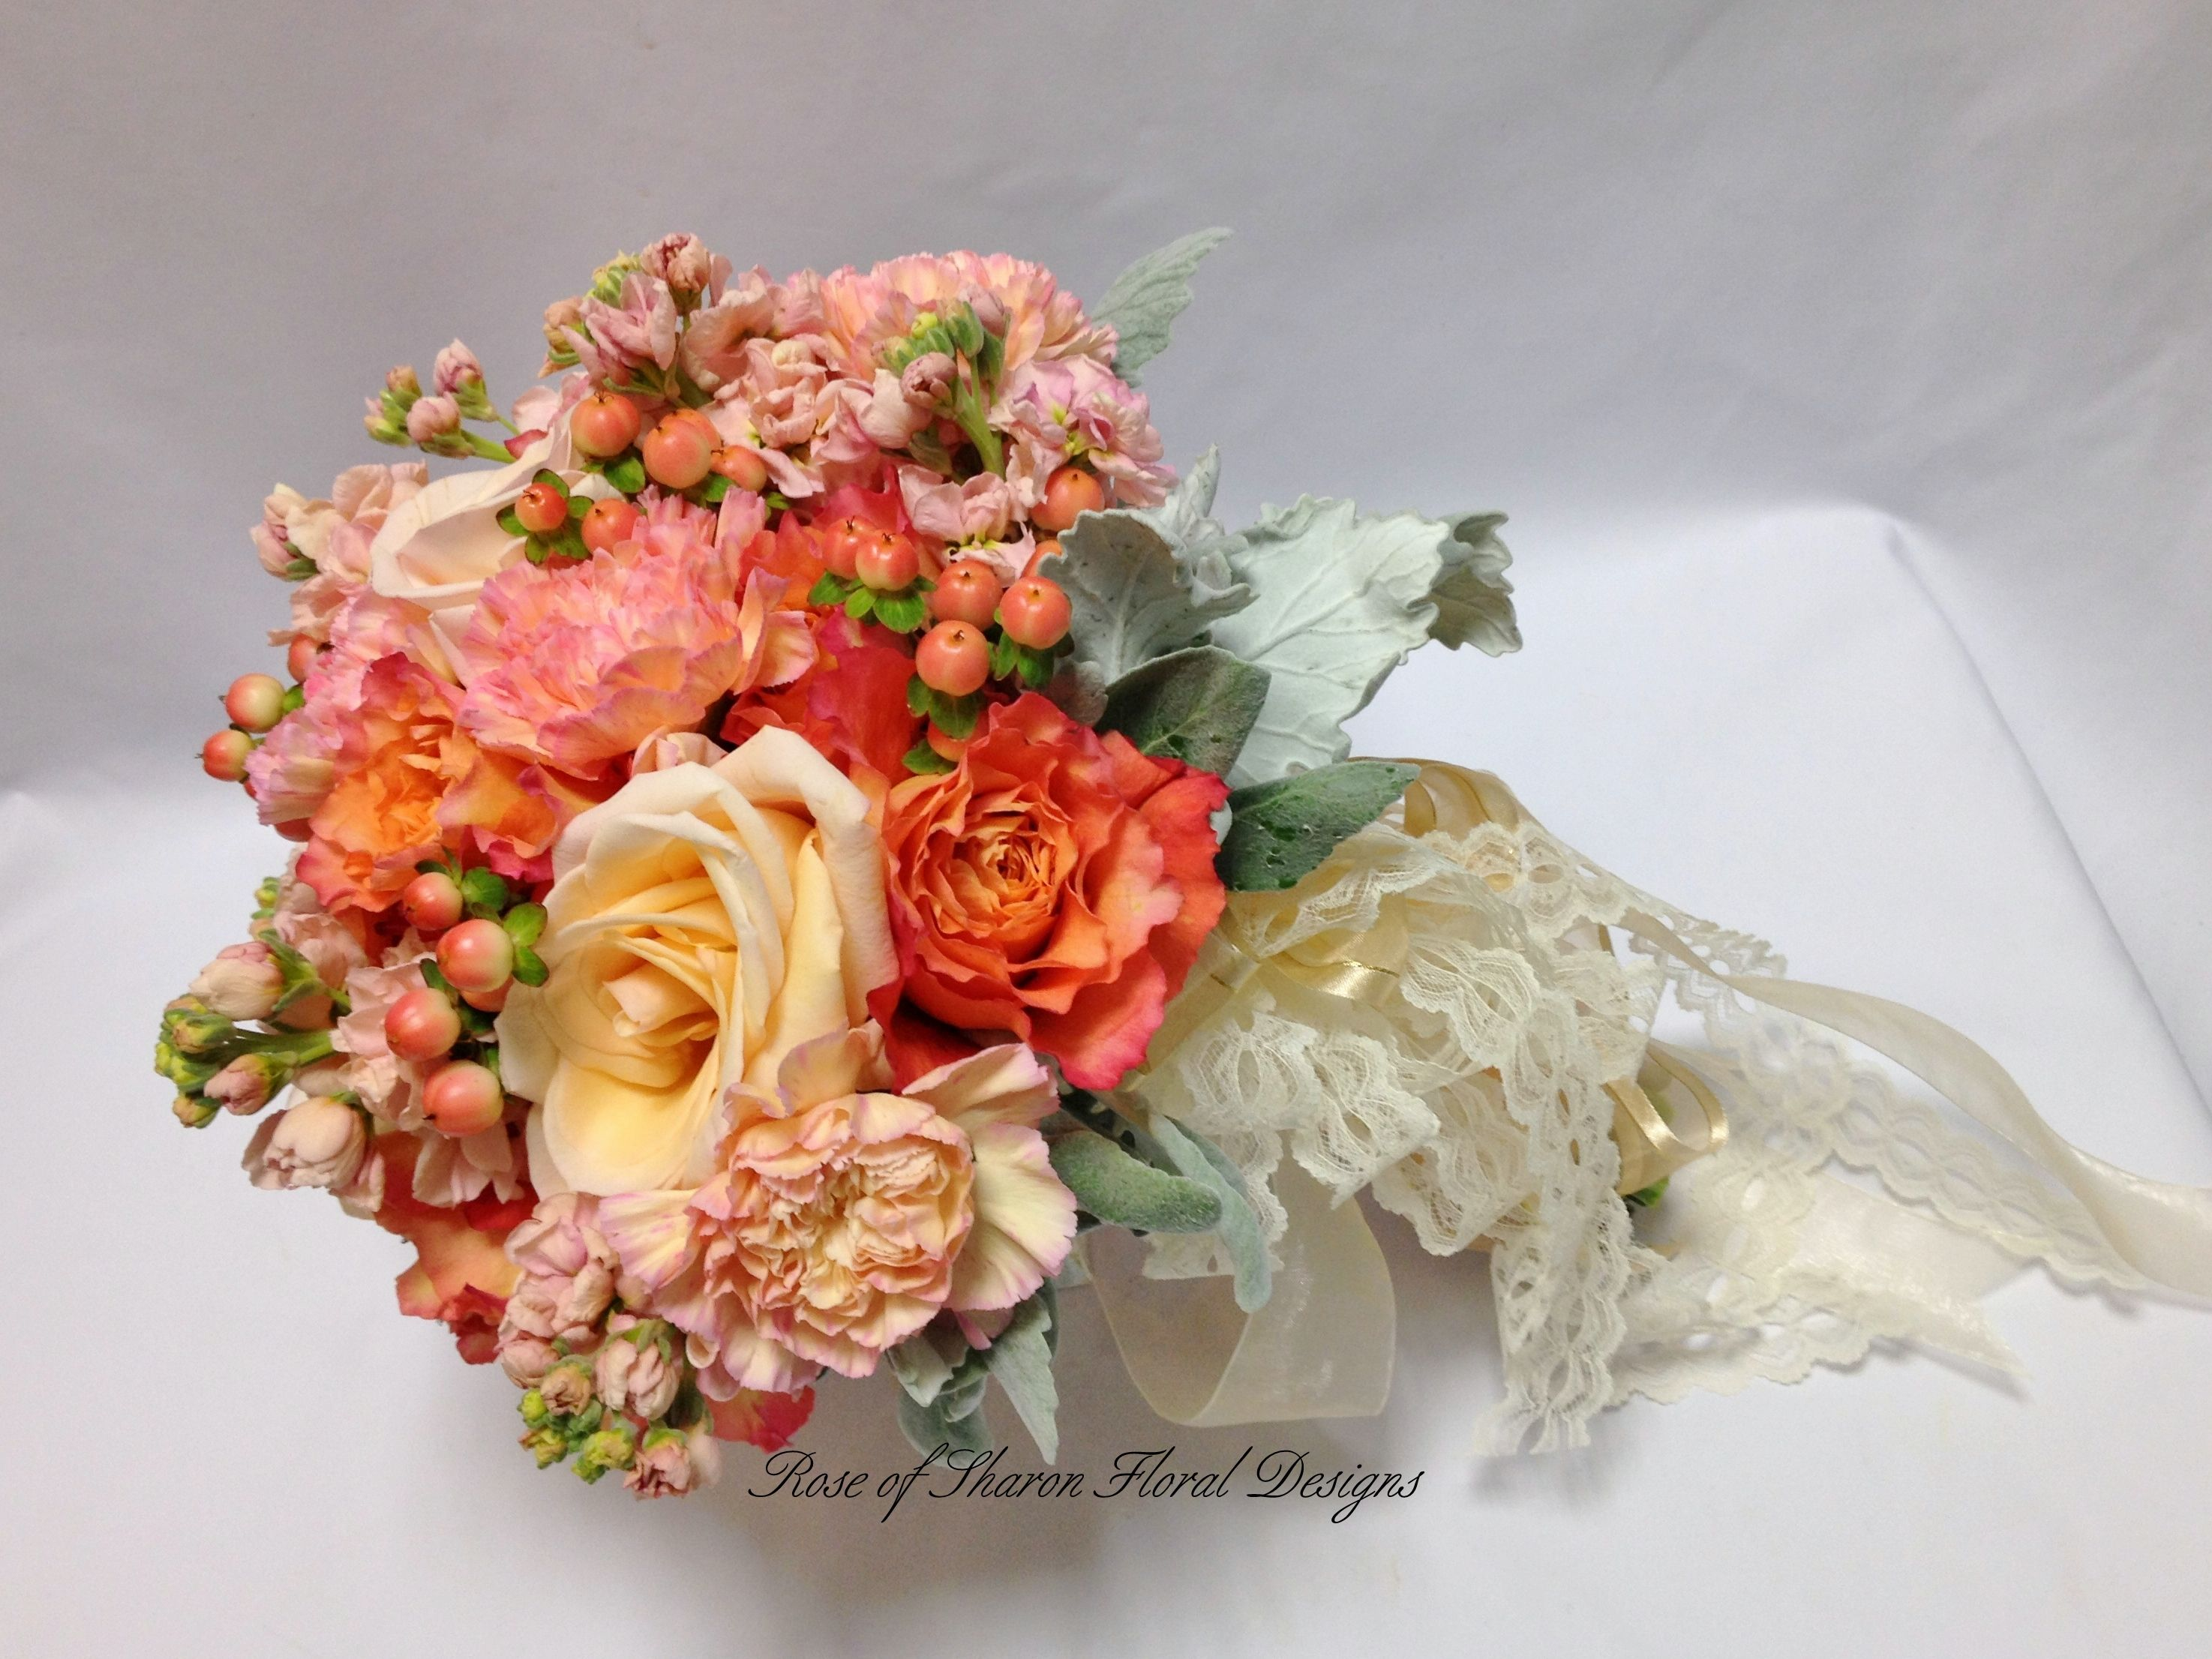 Free Spirit roses, peach roses, stock, dusty miller, and